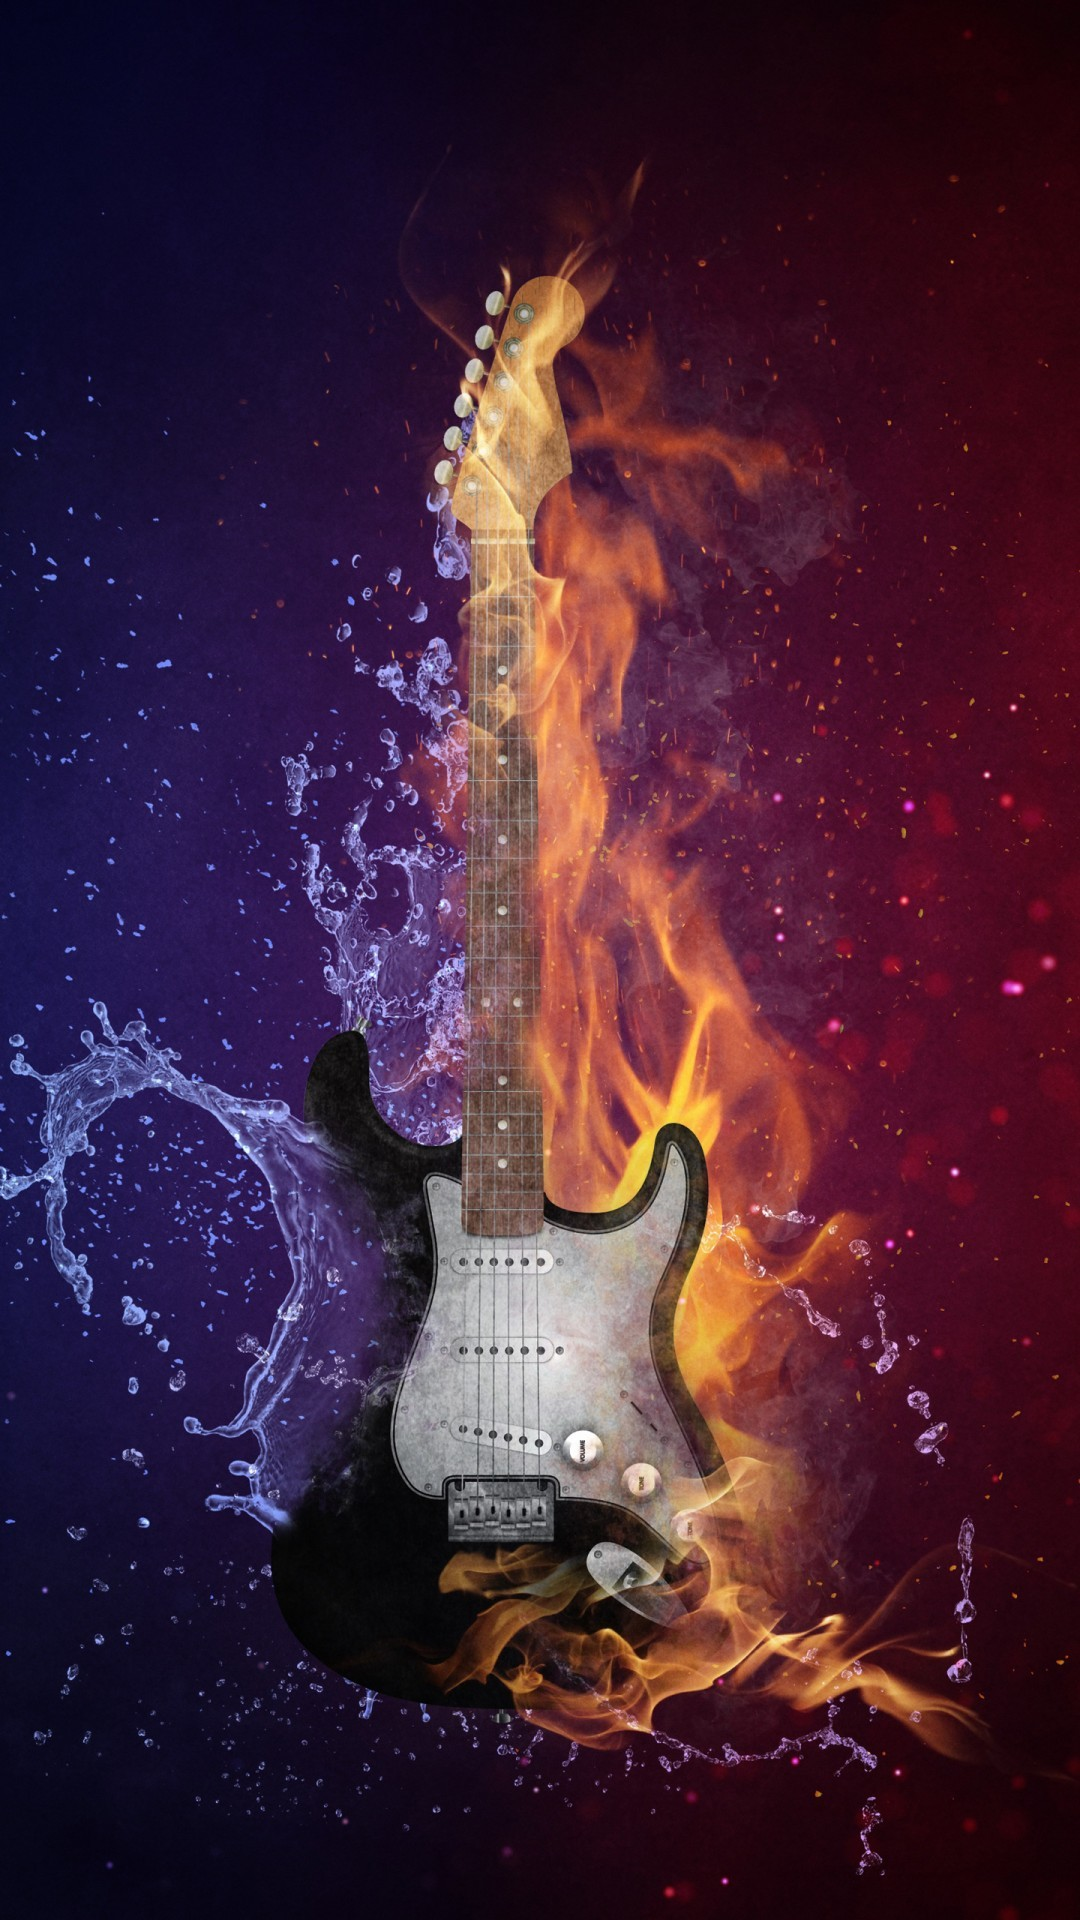 Free Guitar Fire & Cold phone wallpaper by iconn